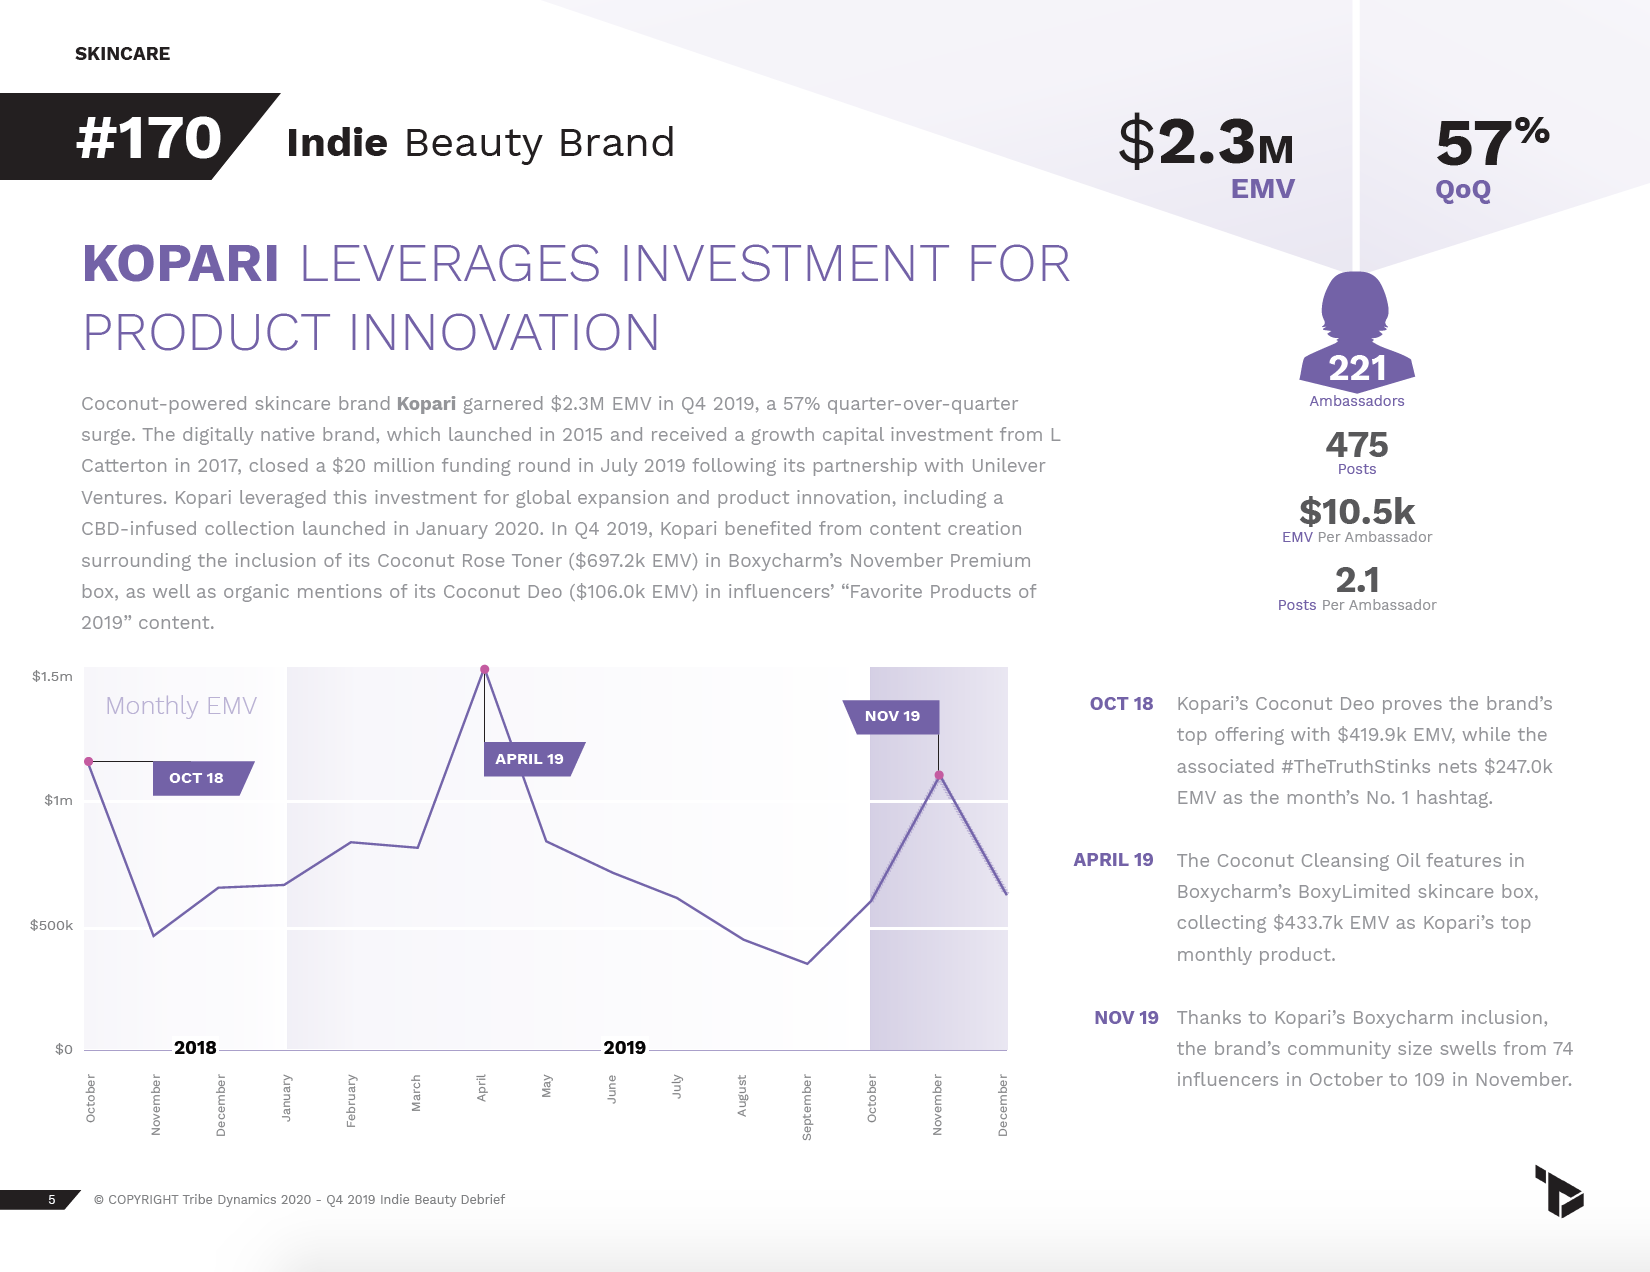 A page from Q4's U.S. Indie Beauty Debrief, featuring Kopari's performance and influencer strategy.